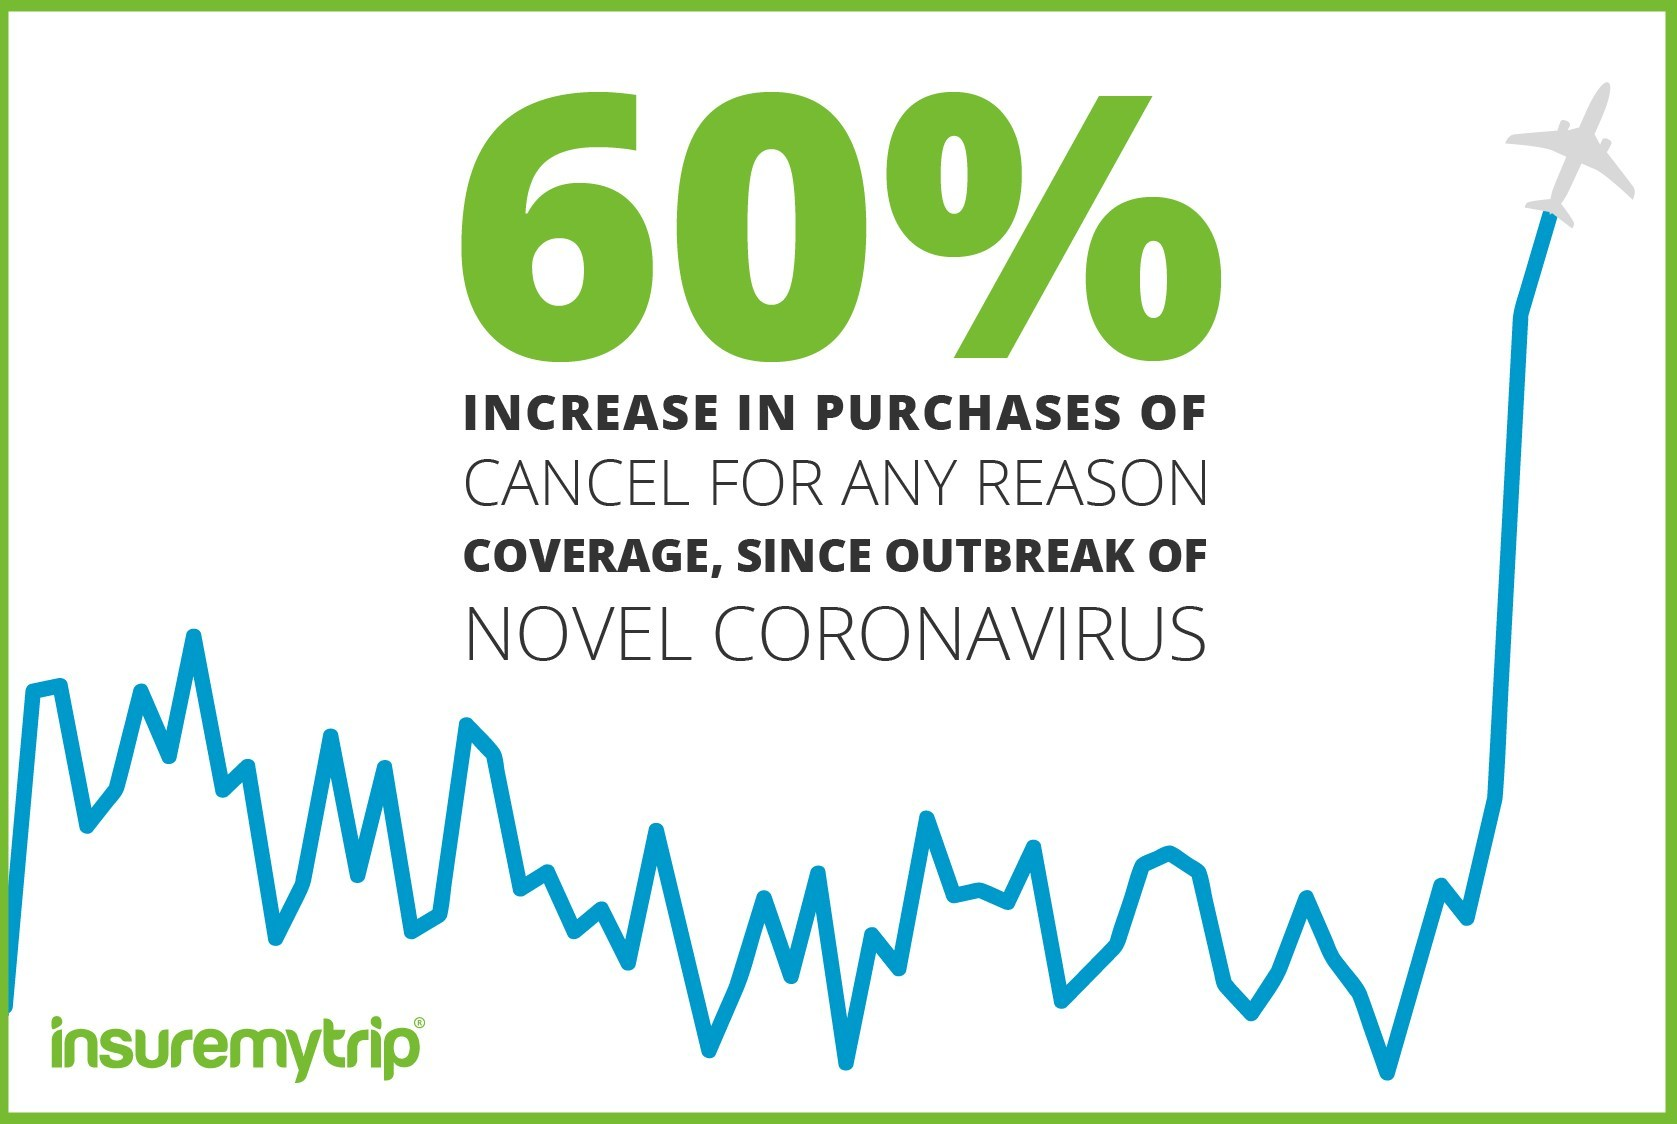 60 Percent Increase in CFAR Coverage Sold Since Coronavirus Outbreak